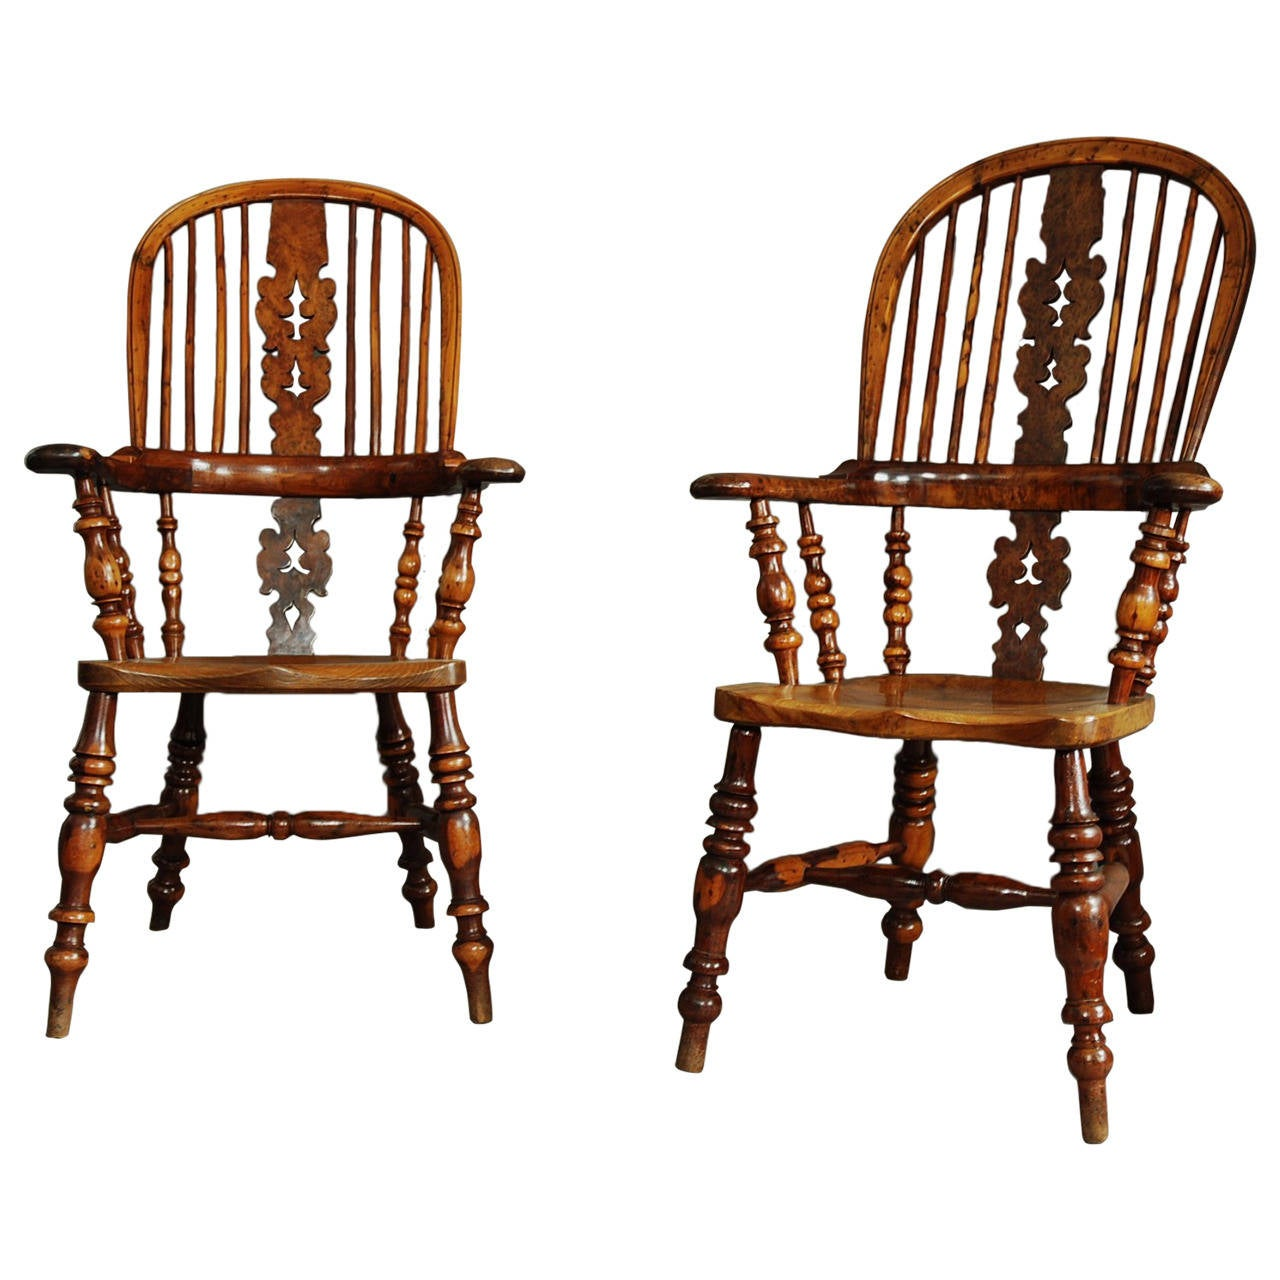 Superb img of Pair of Broad Arm Burr Yew Wood High Back Windsor Chairs at 1stdibs with #AE5015 color and 1280x1280 pixels